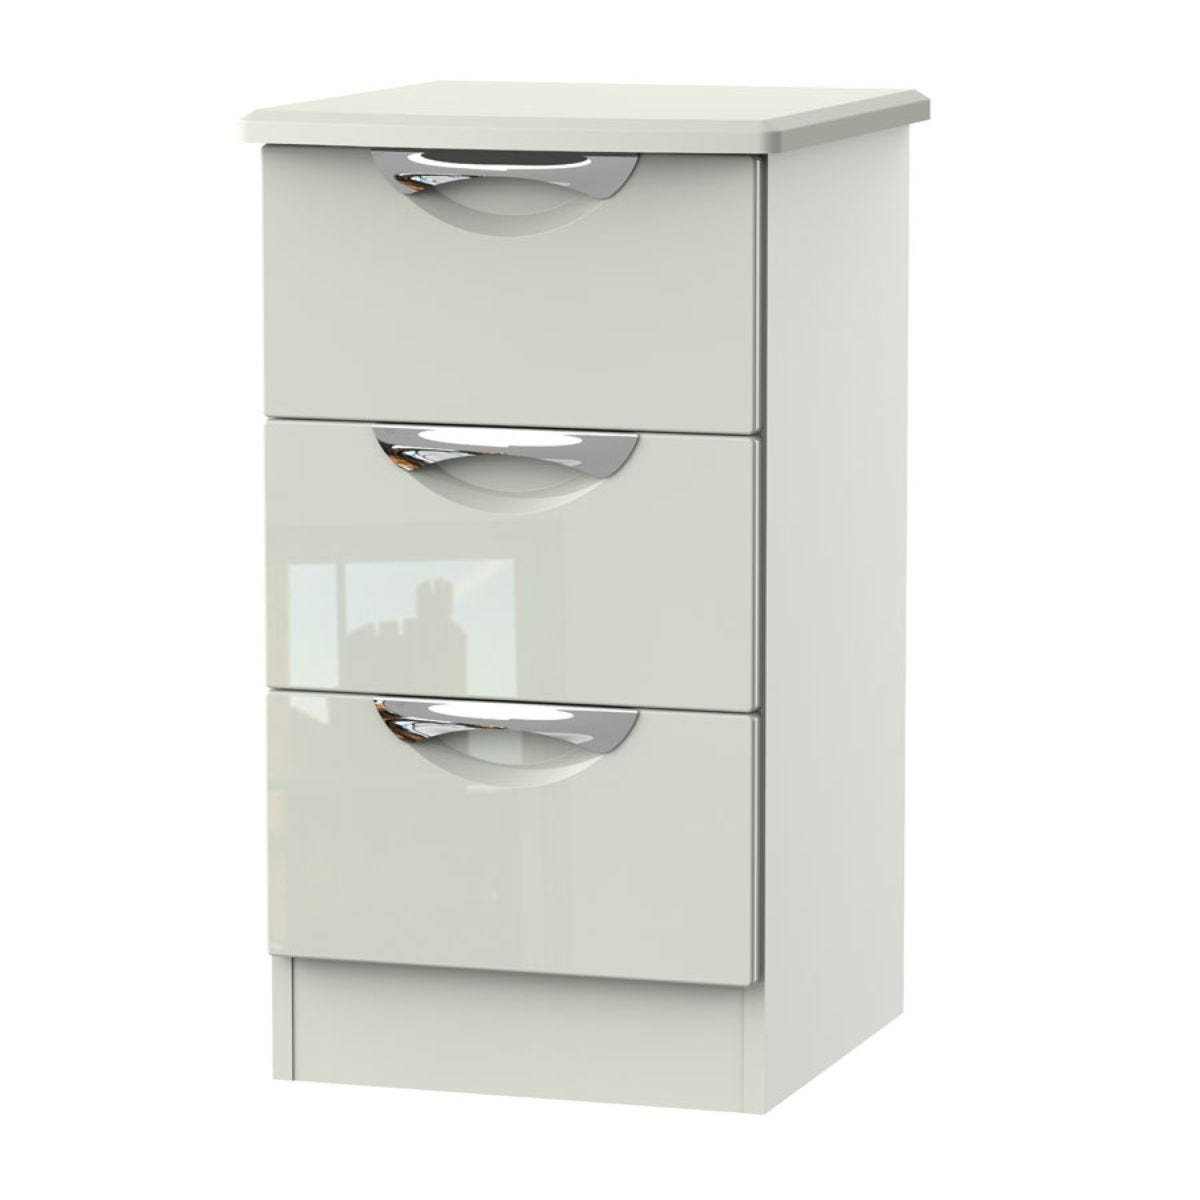 Indices 4-Drawer Chest of Drawers - White/Grey